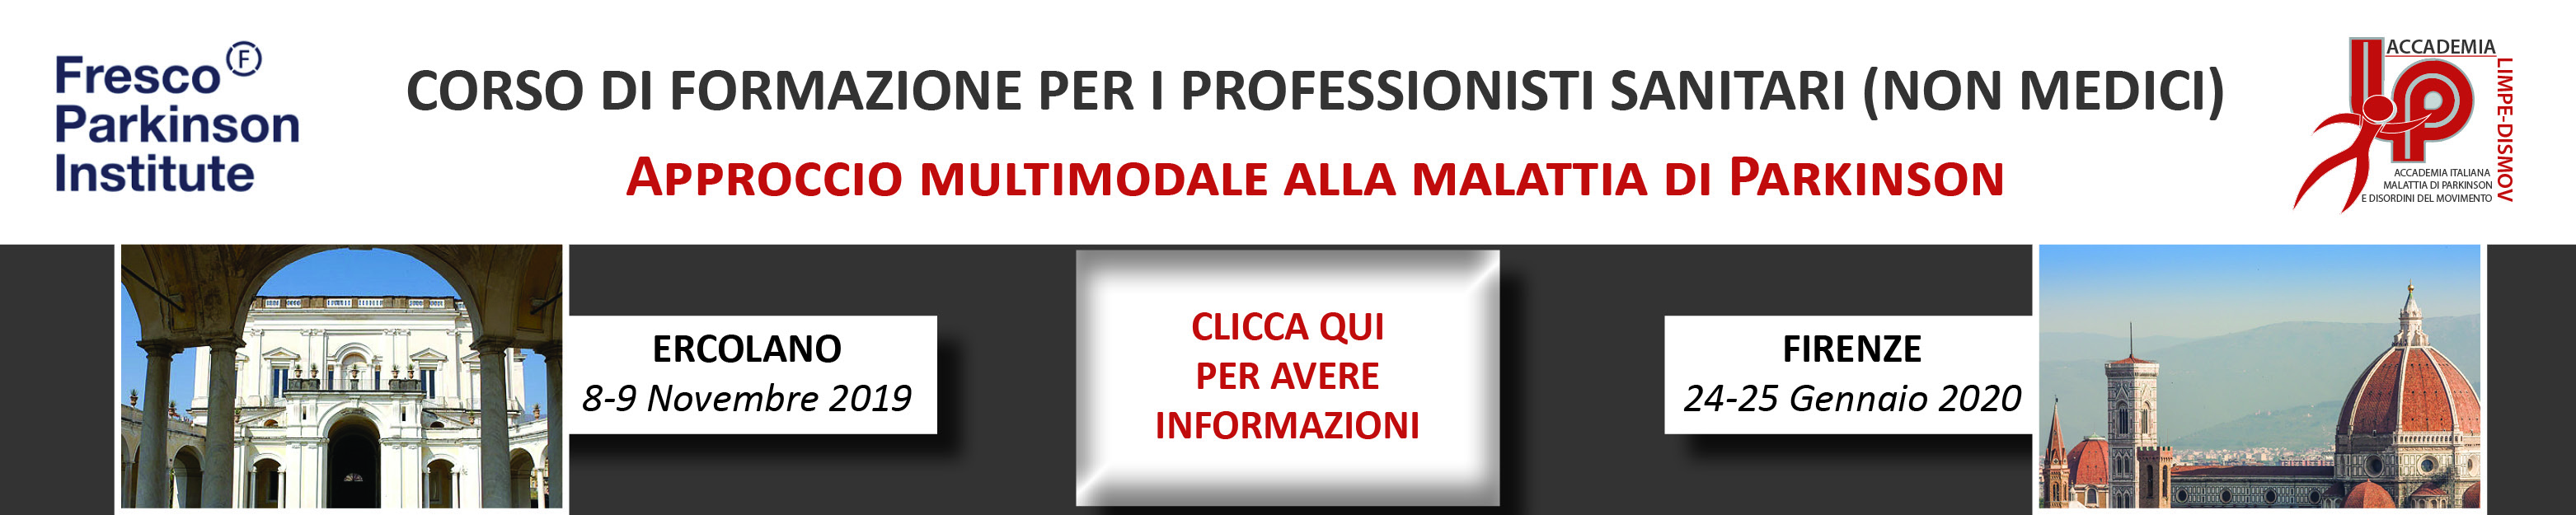 www.accademialimpedismov.it